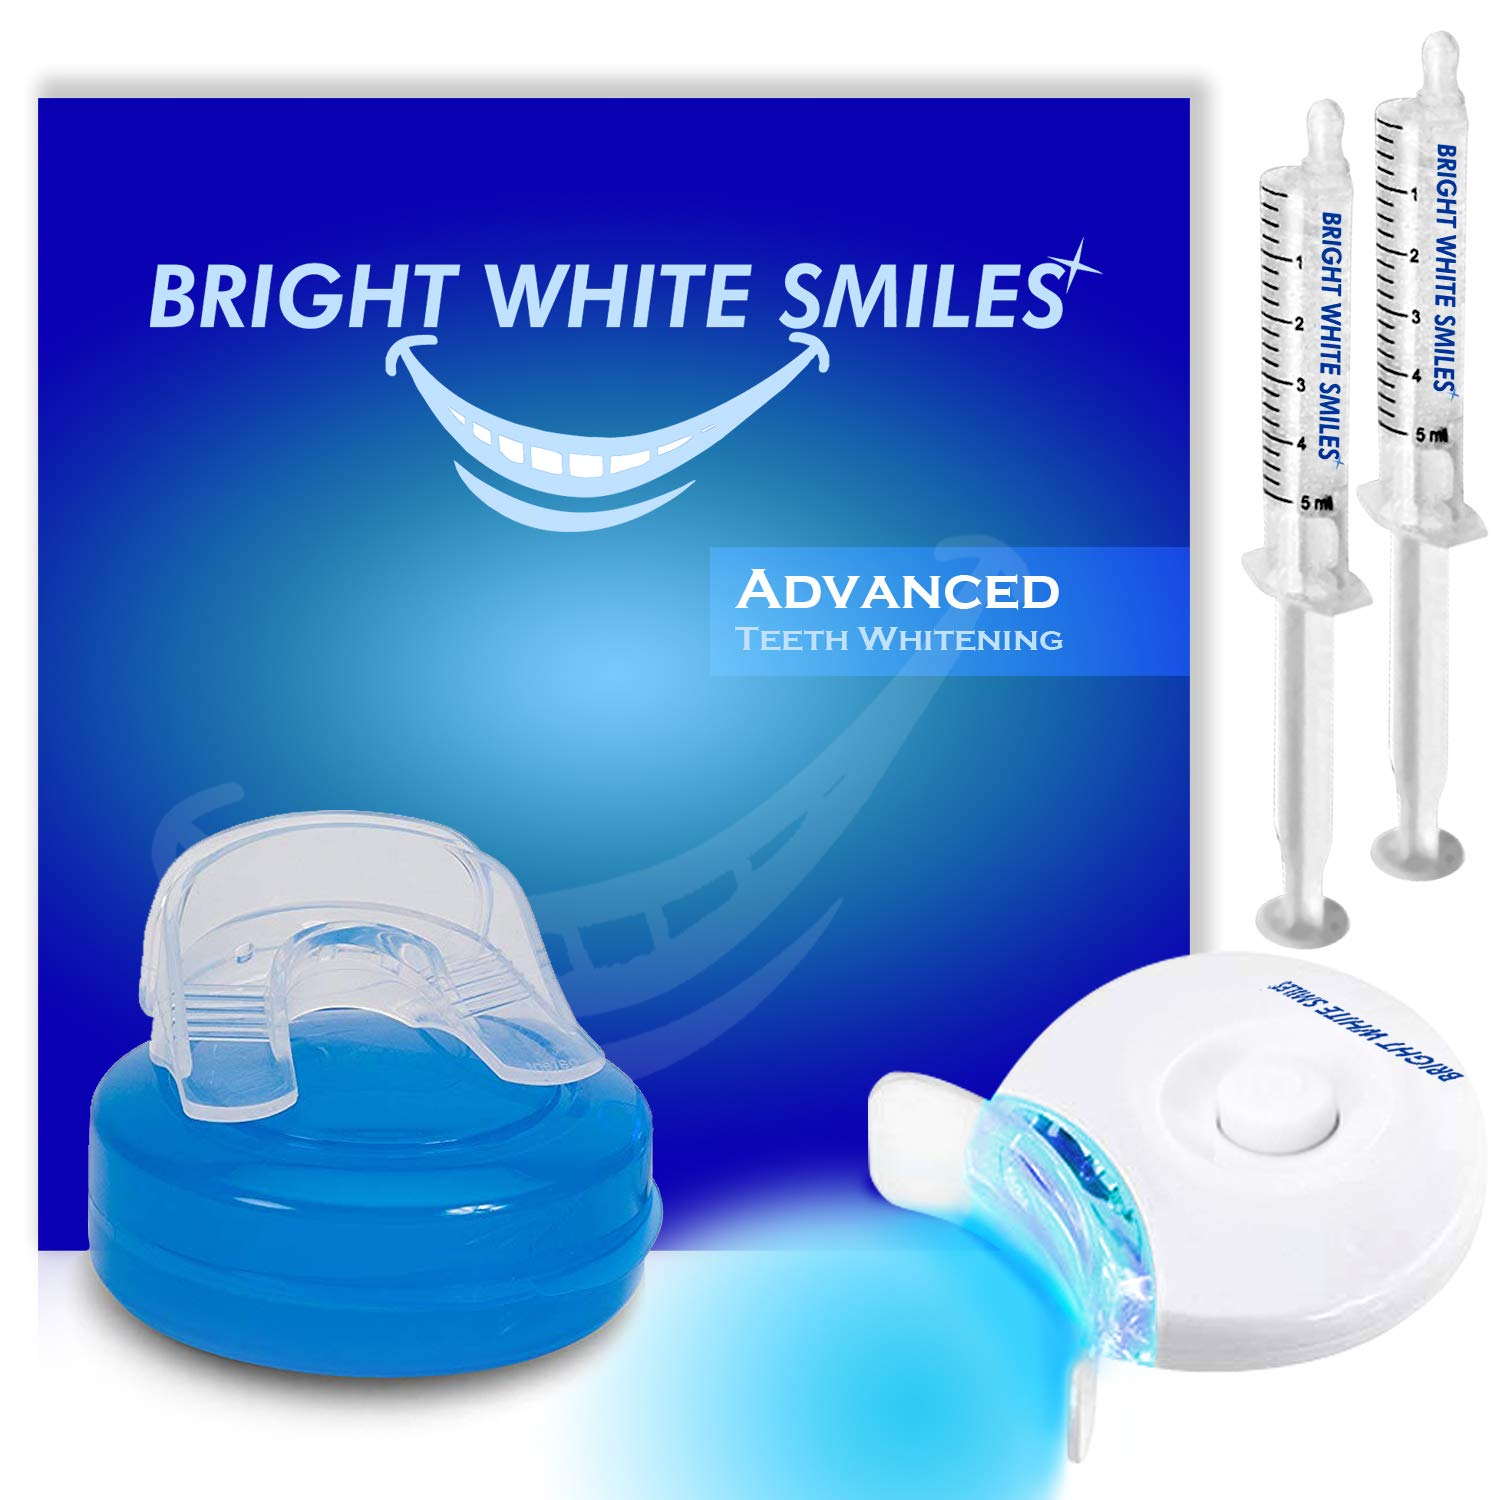 Bright White Smiles Teeth Whitening Kit | LED Light Activated Teeth Whitener | With 2x 5ml 35% Carbamide Peroxide Gel Syringes | Comfort Fit Mouth Tray & Case | For Home Use | Professional Results Dentech